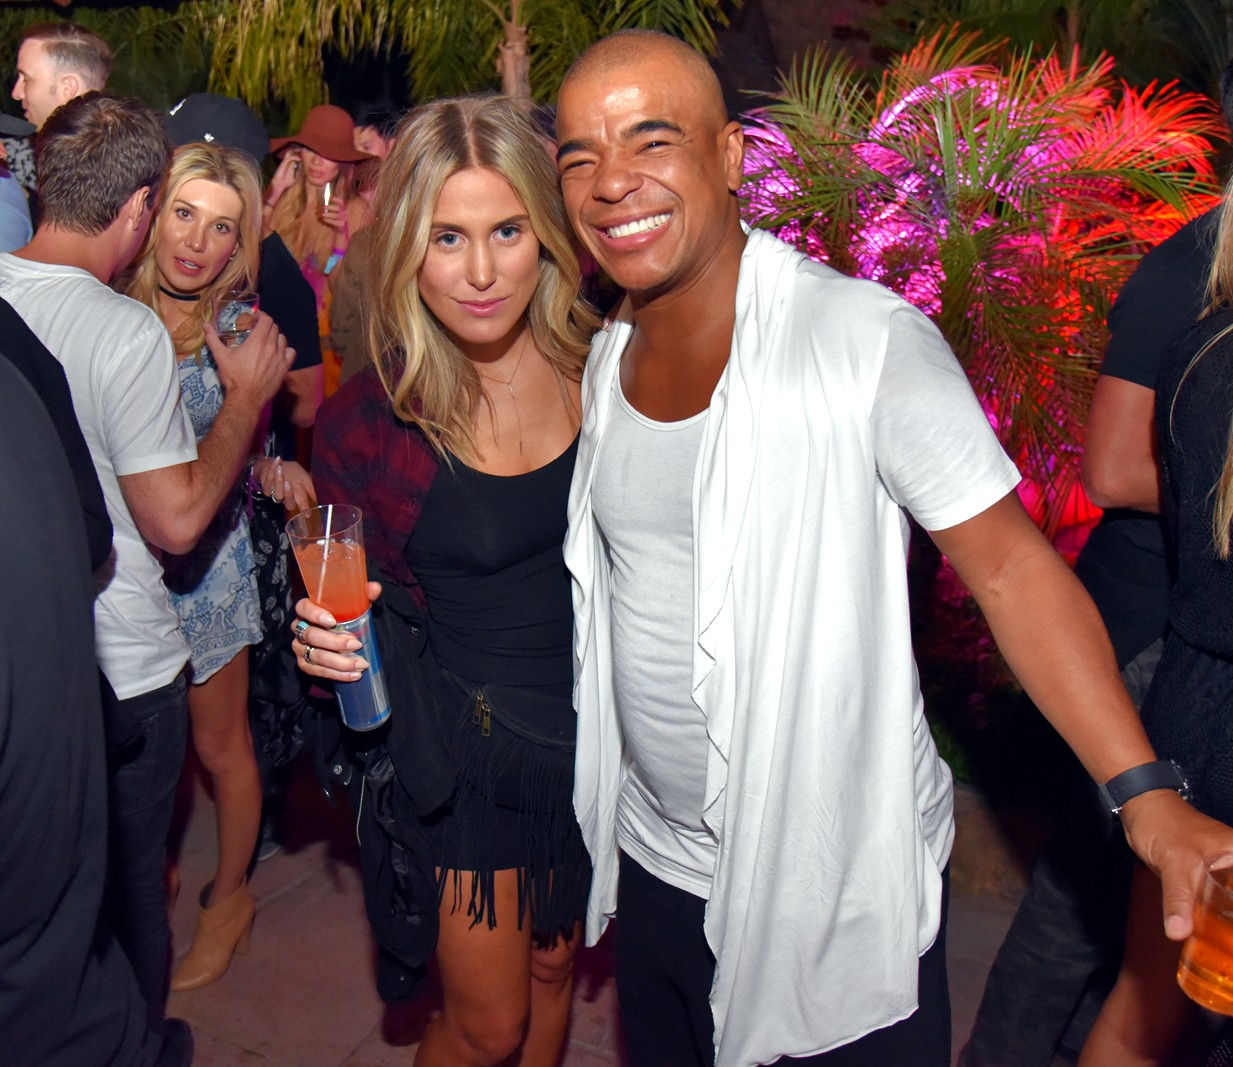 Bob Zangrillo party, Coachella, Erick Morillo 2